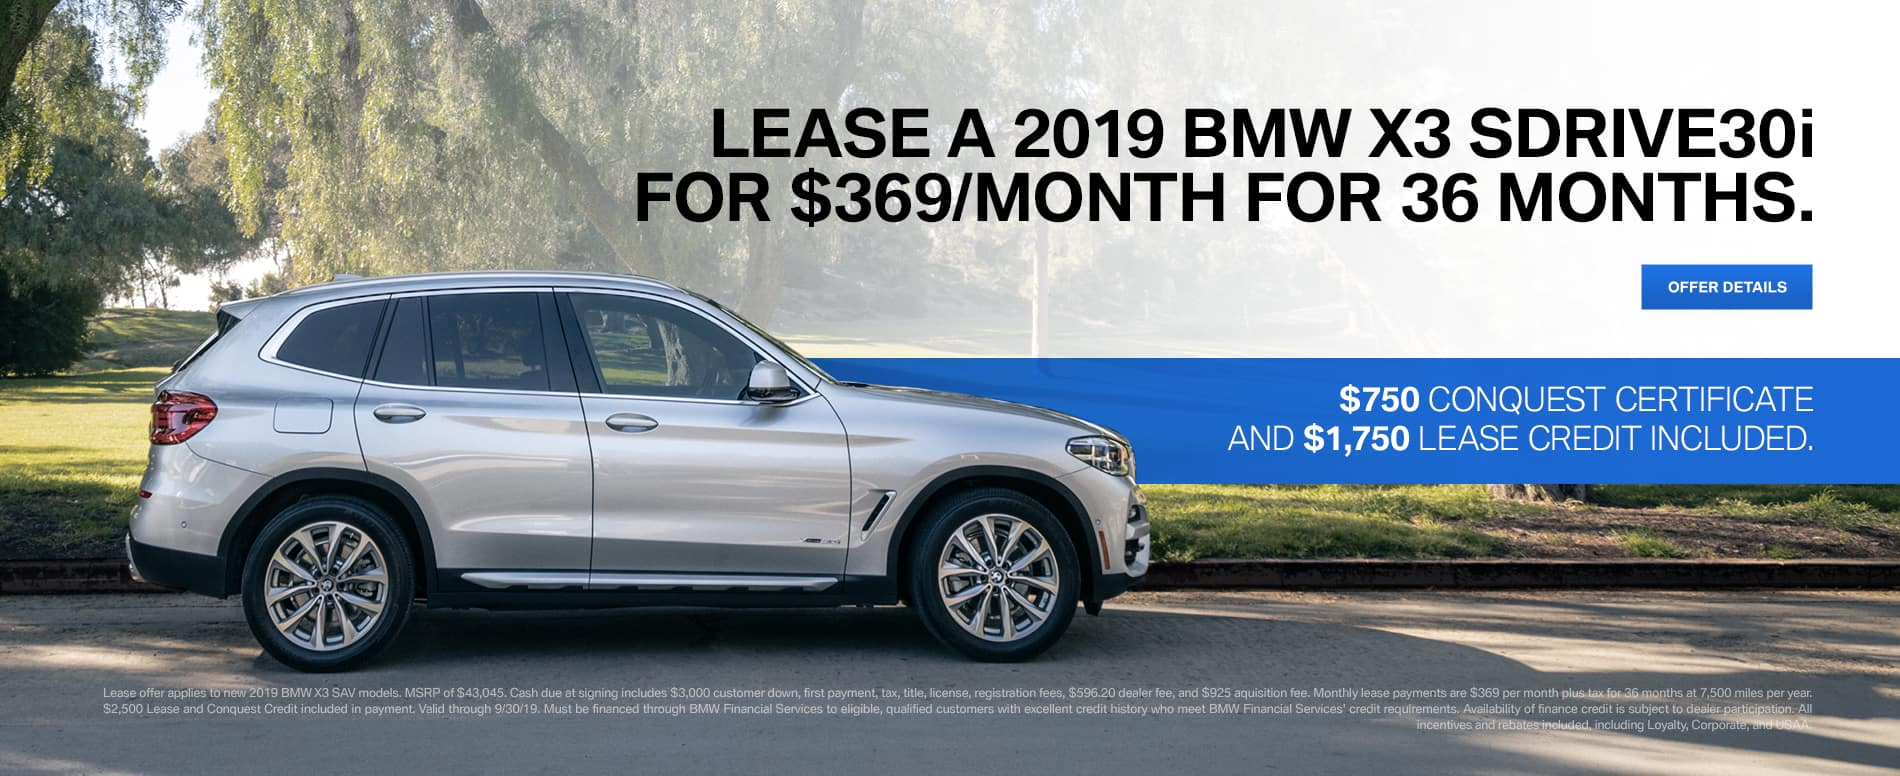 Reeves BMW Tampa | BMW Dealership | Tampa BMW